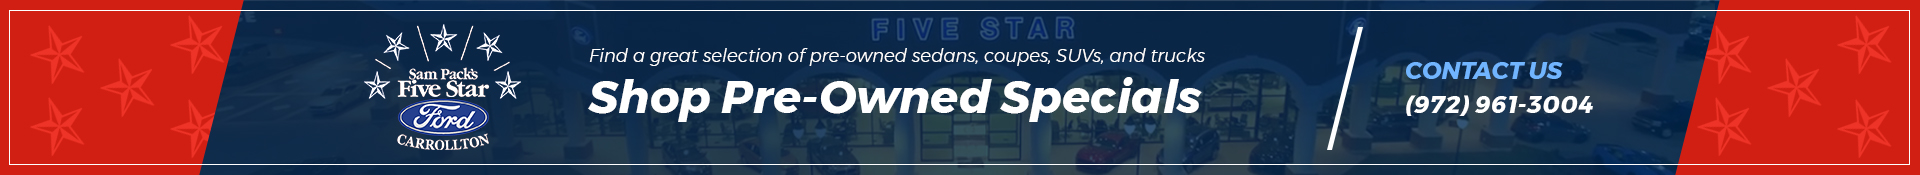 Preowned Specials Srp Banner